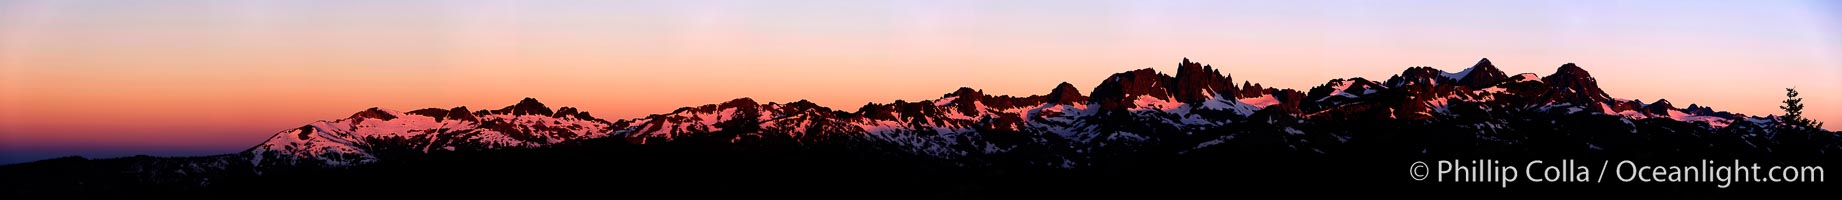 Panorama of the Minarets at sunrise, near Mammoth Mountain.  The Minarets are a series of seventeen jagged peaks in the Ritter Range, west of Mammoth Mountain in the Ansel Adams Wilderness.  These basalt peaks were carved by glaciers on both sides of the range.  The highest of the Minarets stands 12,281 feet above sea level, Mammoth Lakes, California